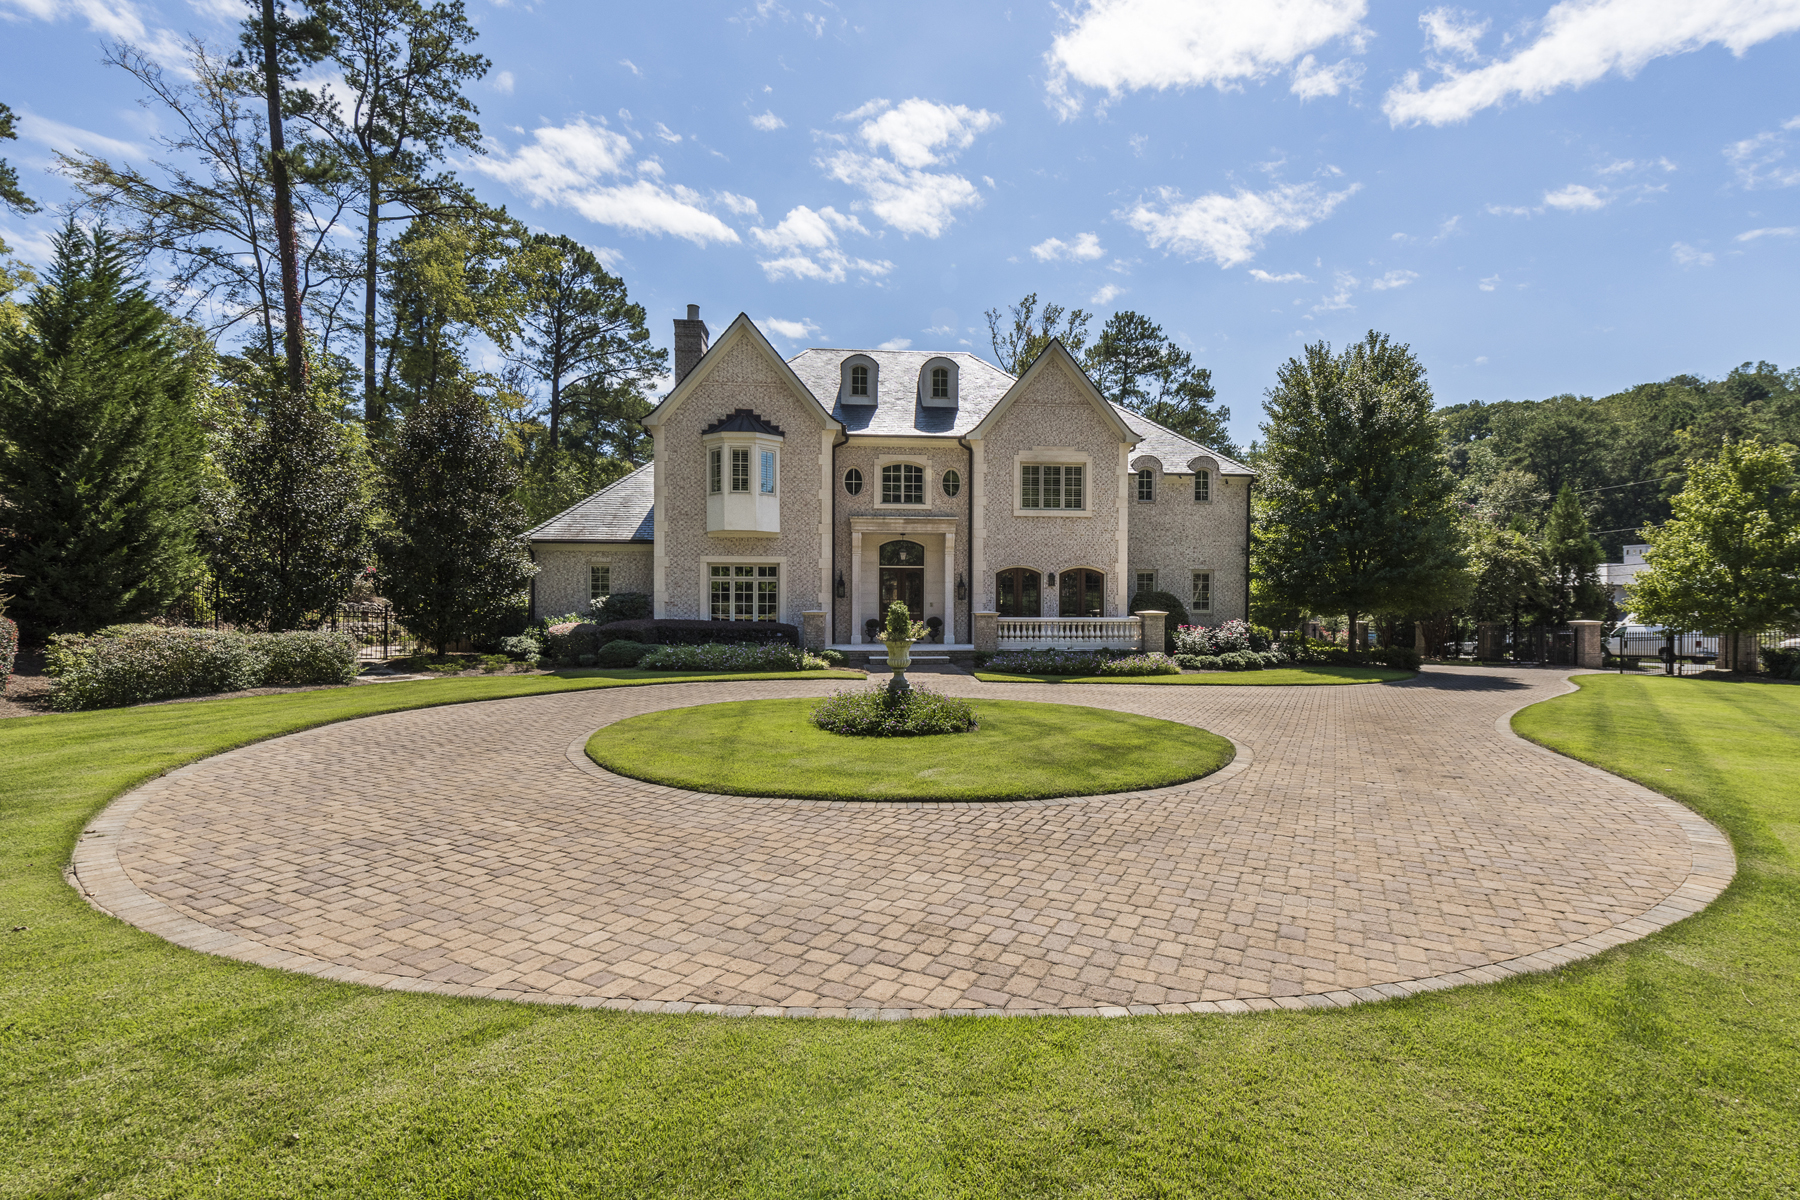 Maison unifamiliale pour l Vente à Gated On 1.14 Acres 5128 Powers Ferry Road Buckhead, Atlanta, Georgia, 30327 États-Unis